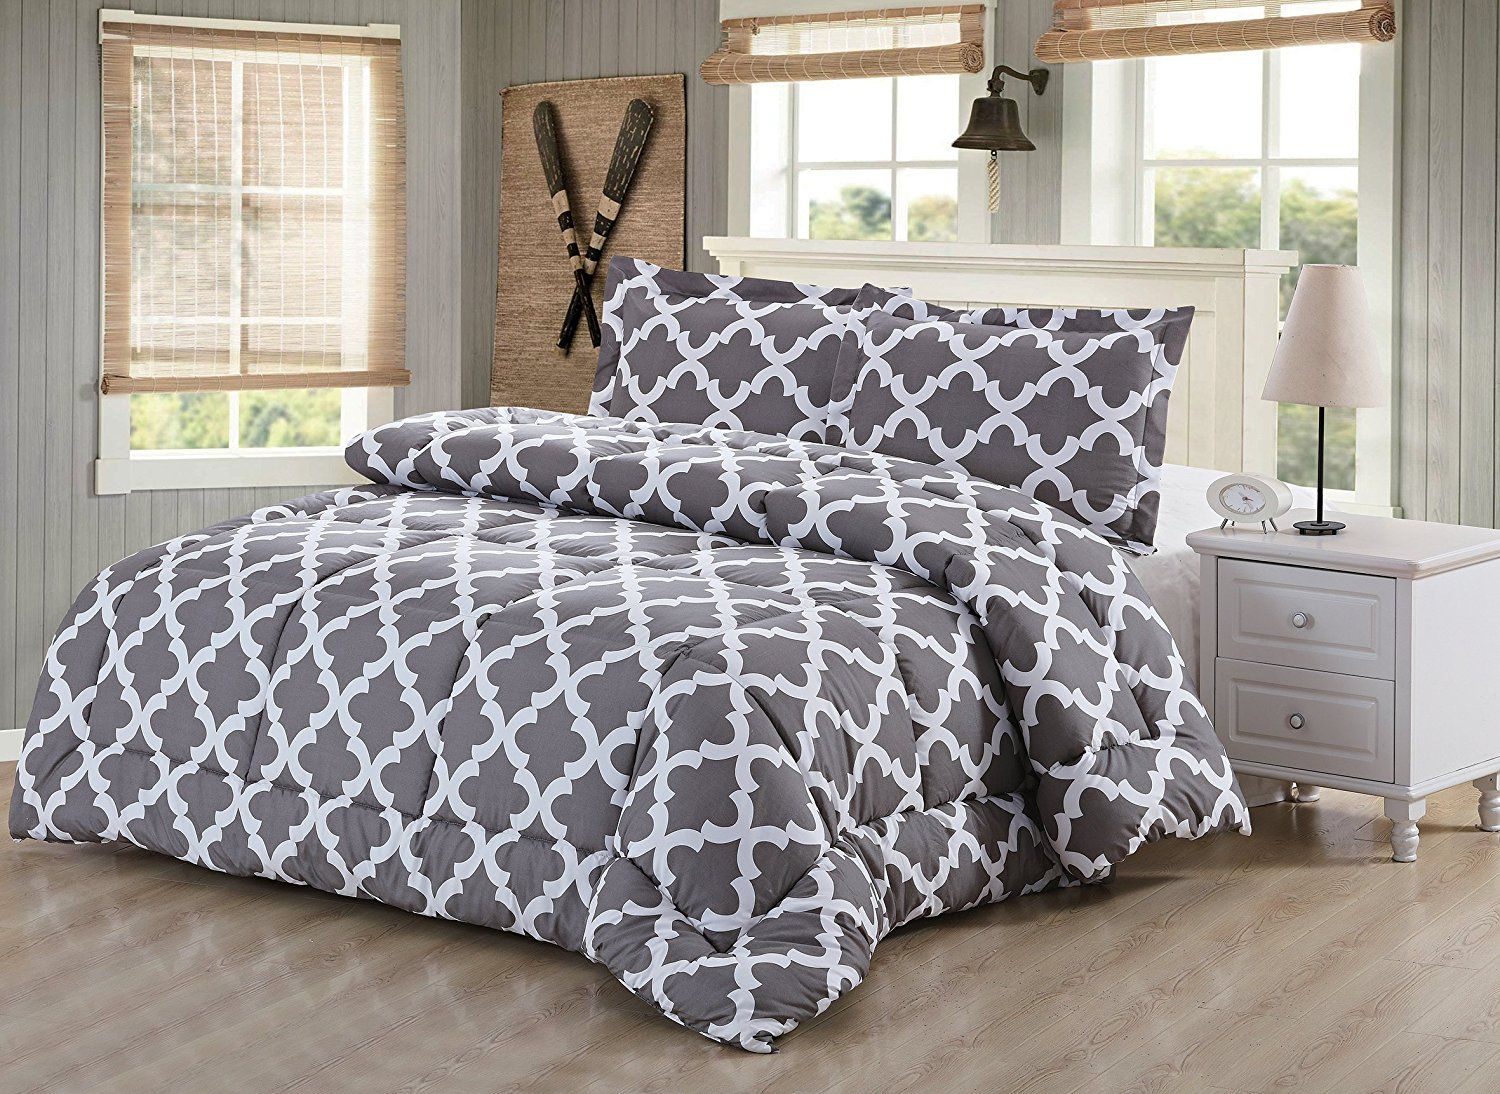 bedroom comforters. Boys Girls Kids Twin Bedding Sets Sale  Comforter and Pillows